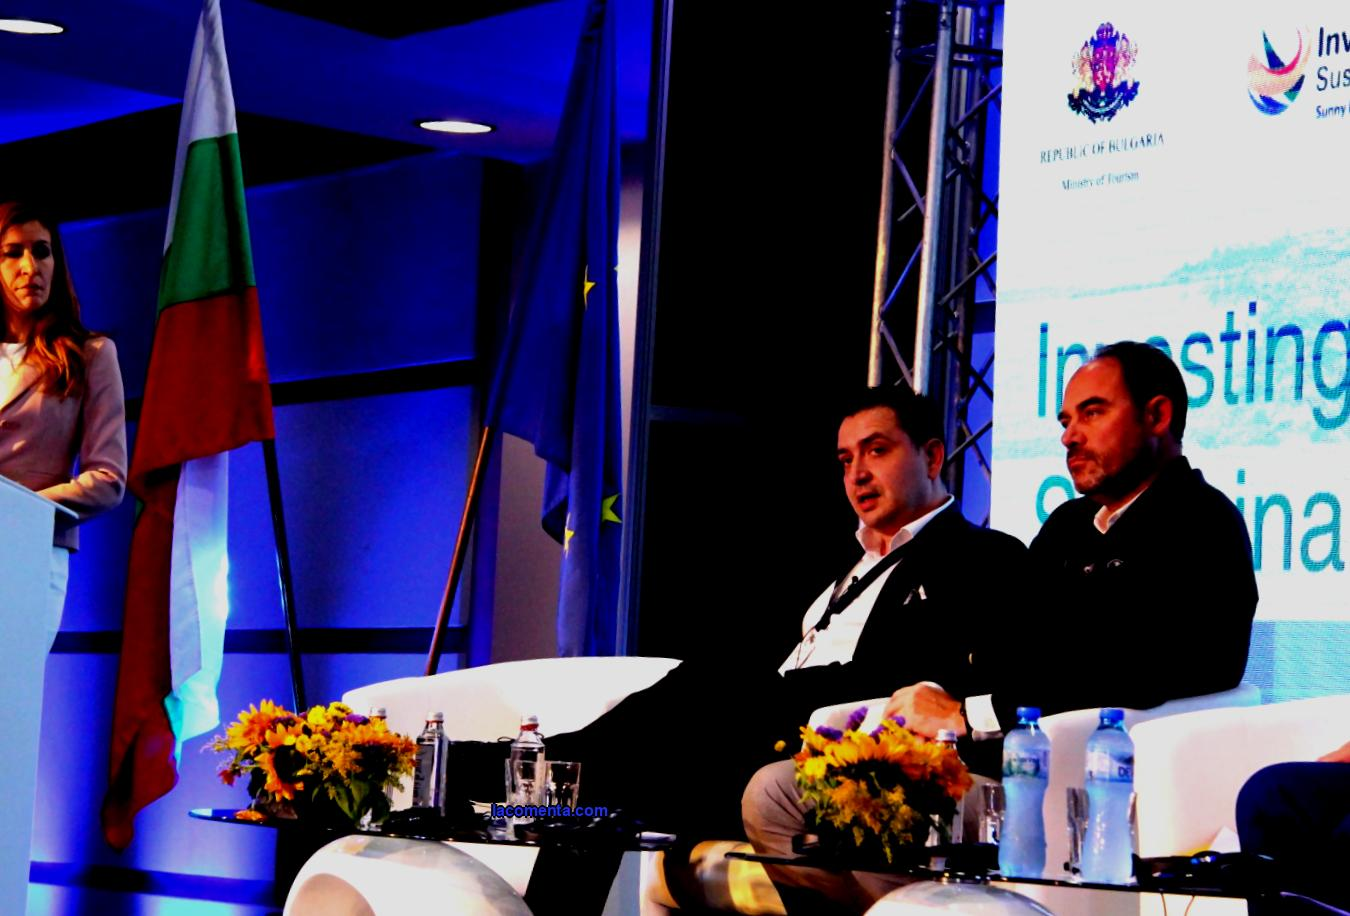 Tourism in Bulgaria is open to investors